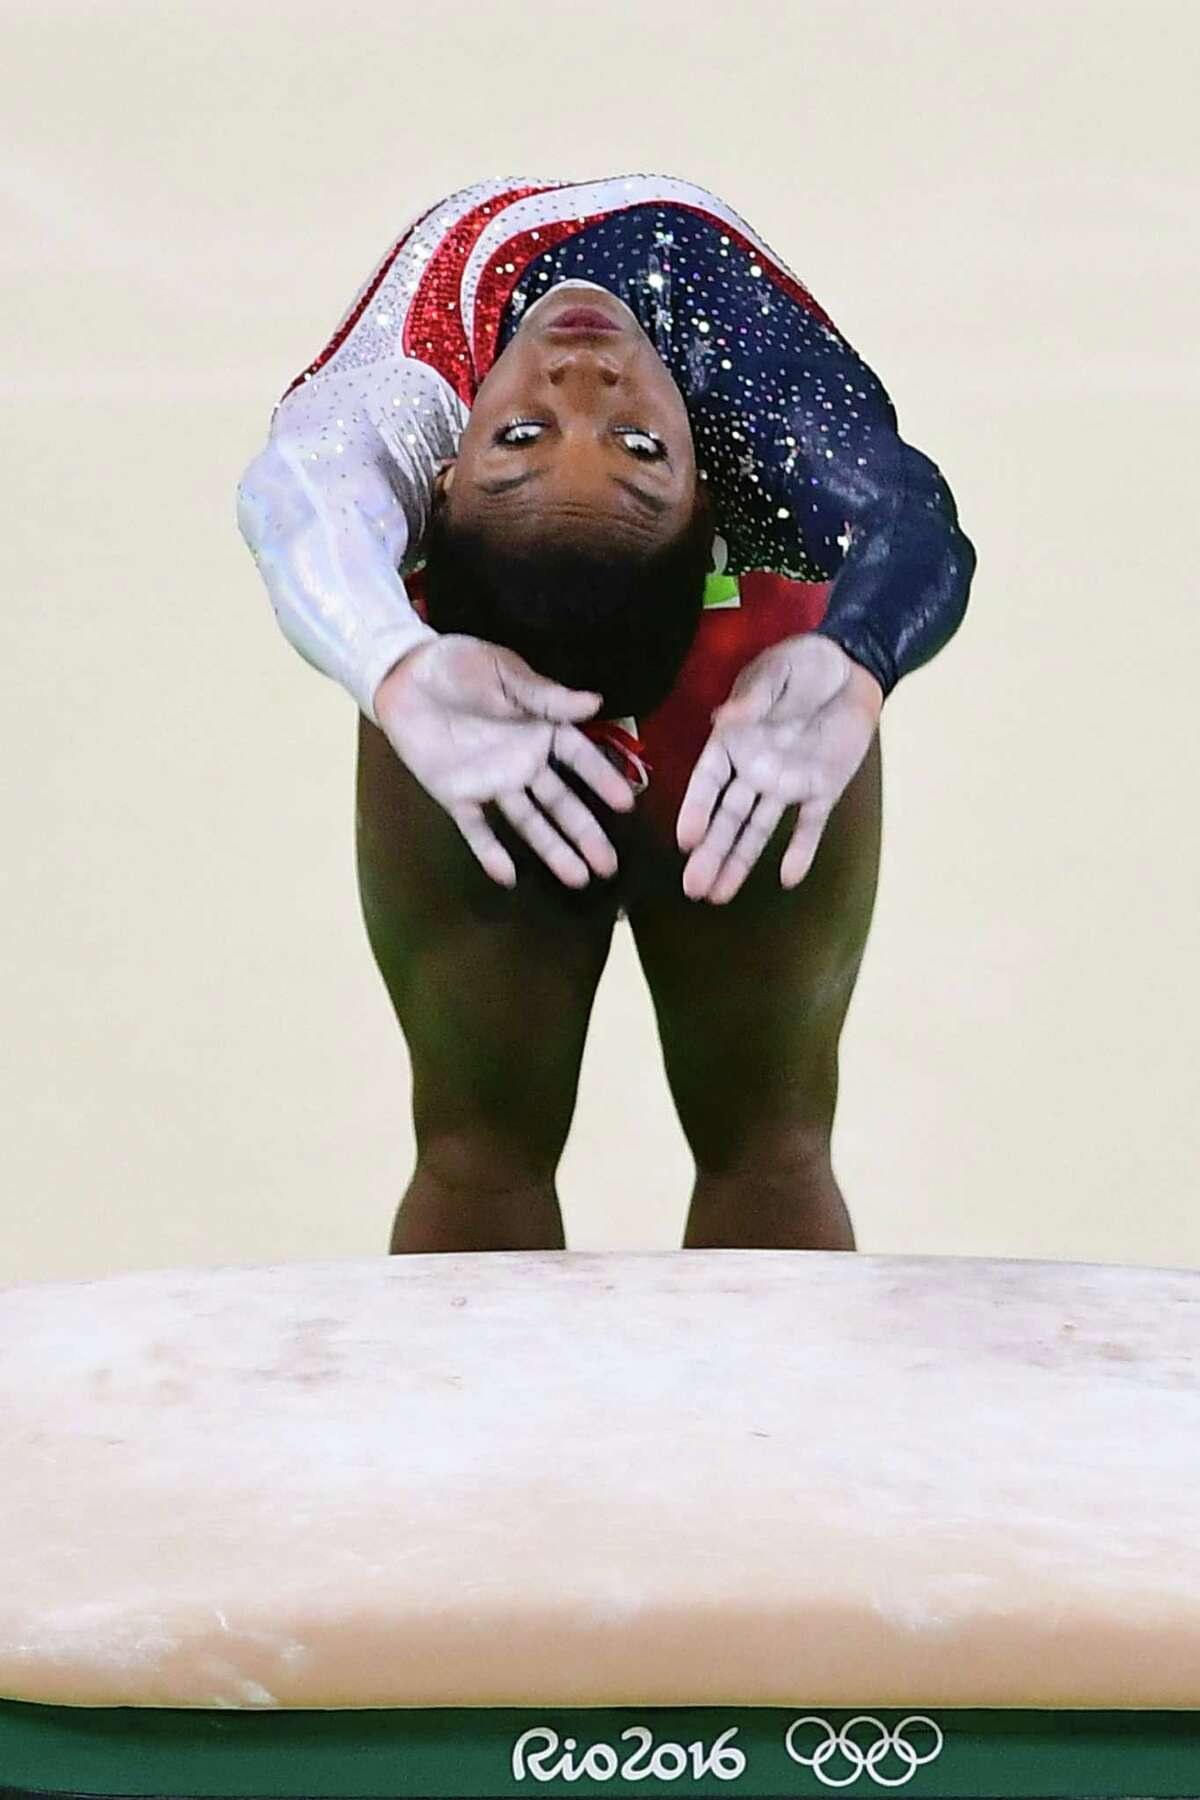 The Amanar, in which Biles does 21/2 twists and makes a blind landing, is a vault tried by few gymnasts.